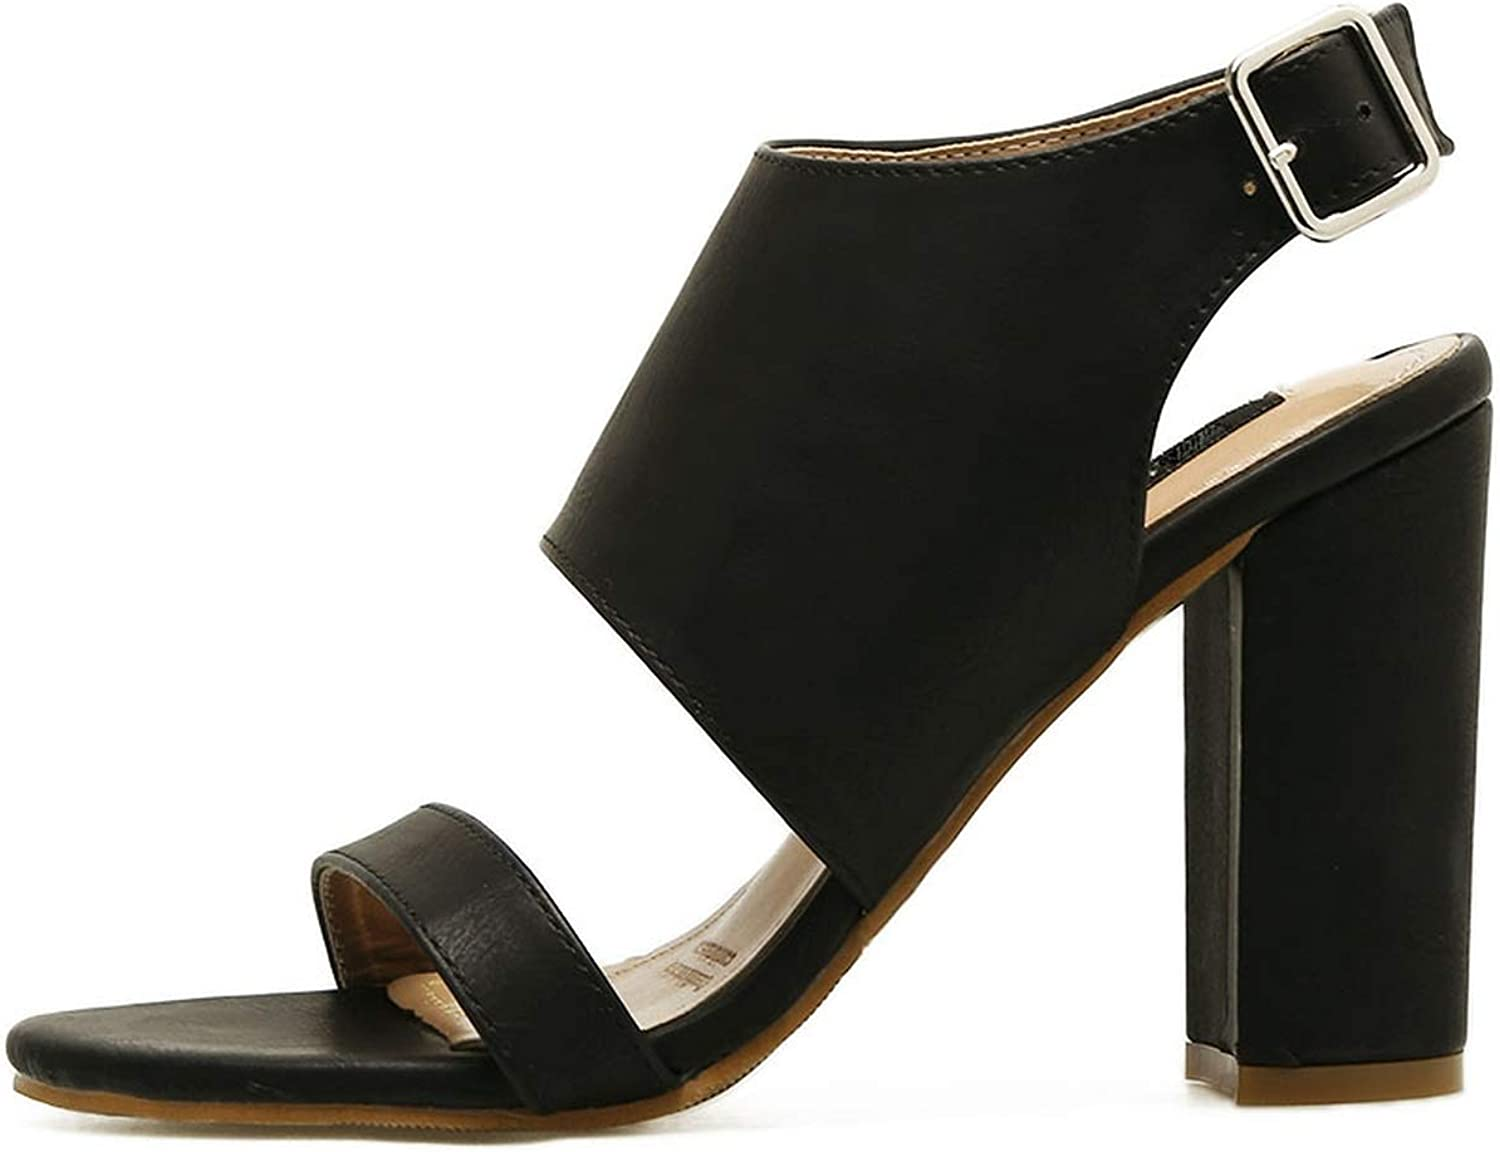 Alerghrg Buckle Style Chunky Block Pumps High Heels 10cm Black Brown Size 35-10